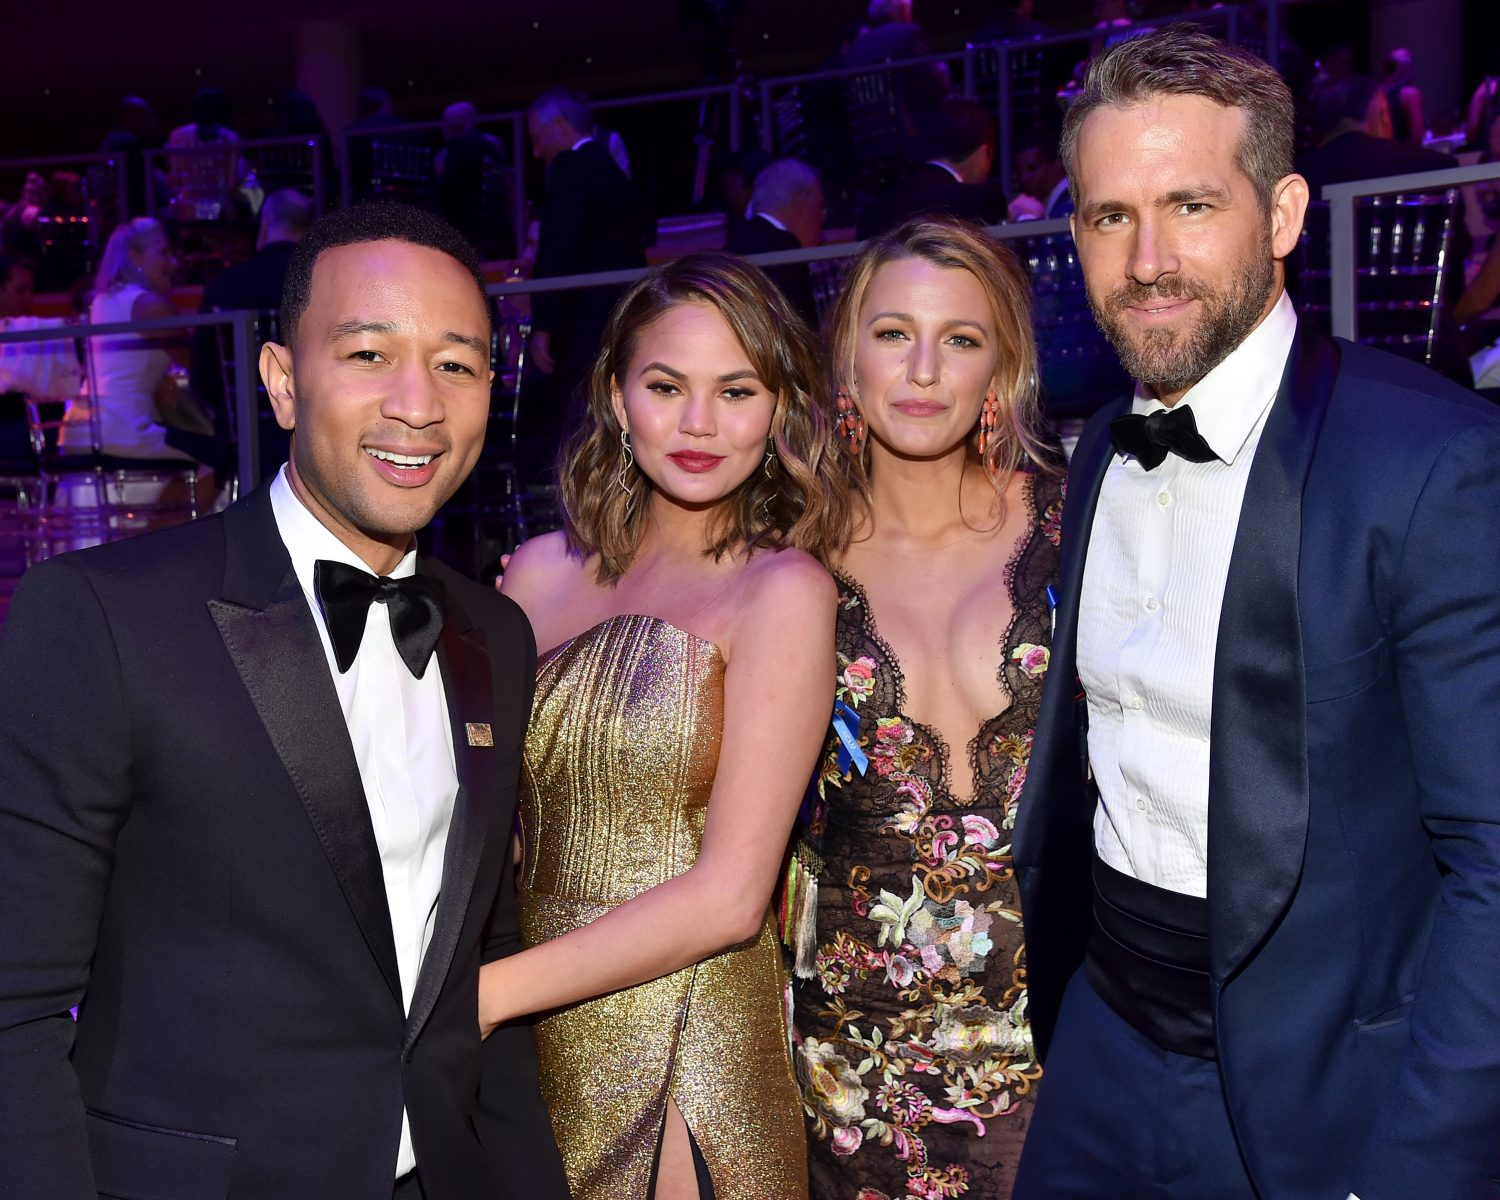 Blake Lively Ryan Reynolds Hang With Chrissy Teigen John